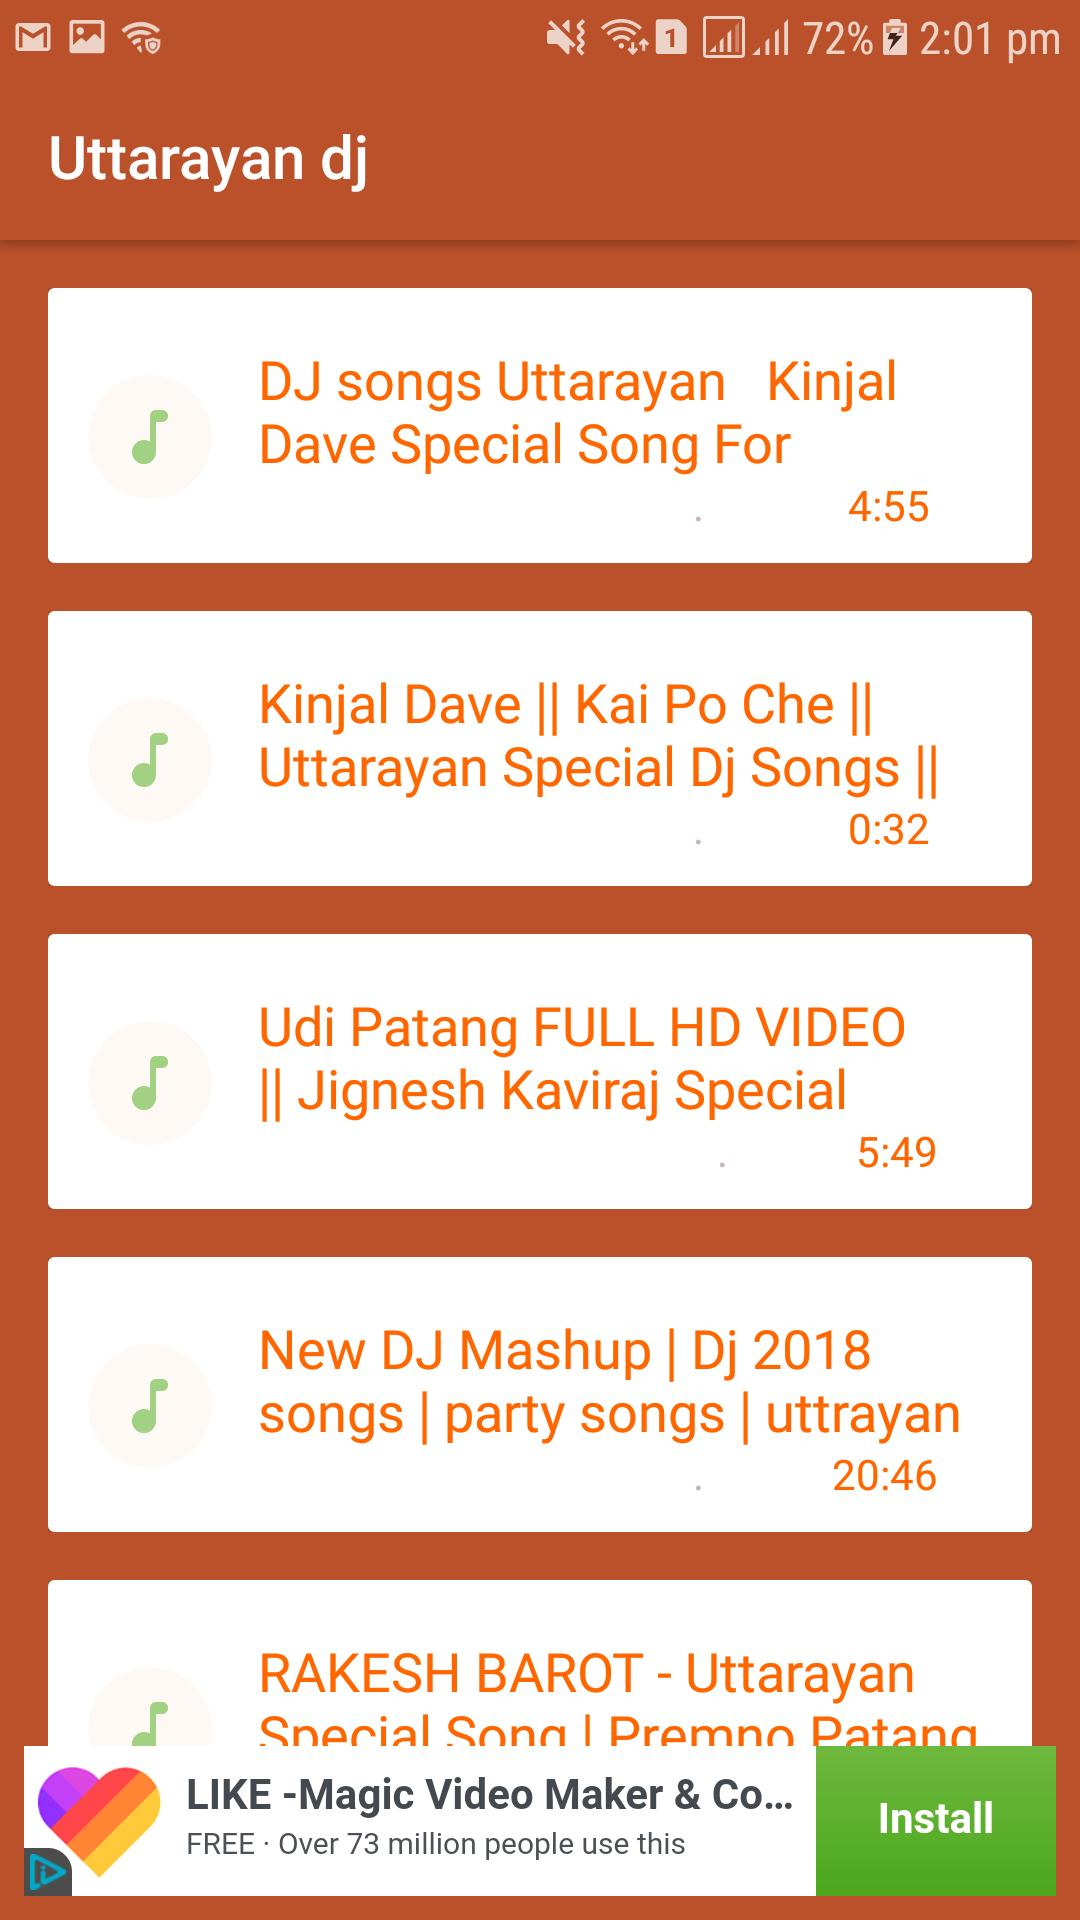 Uttarayan DJ Mix Song/Mp3 2019 for Android - APK Download